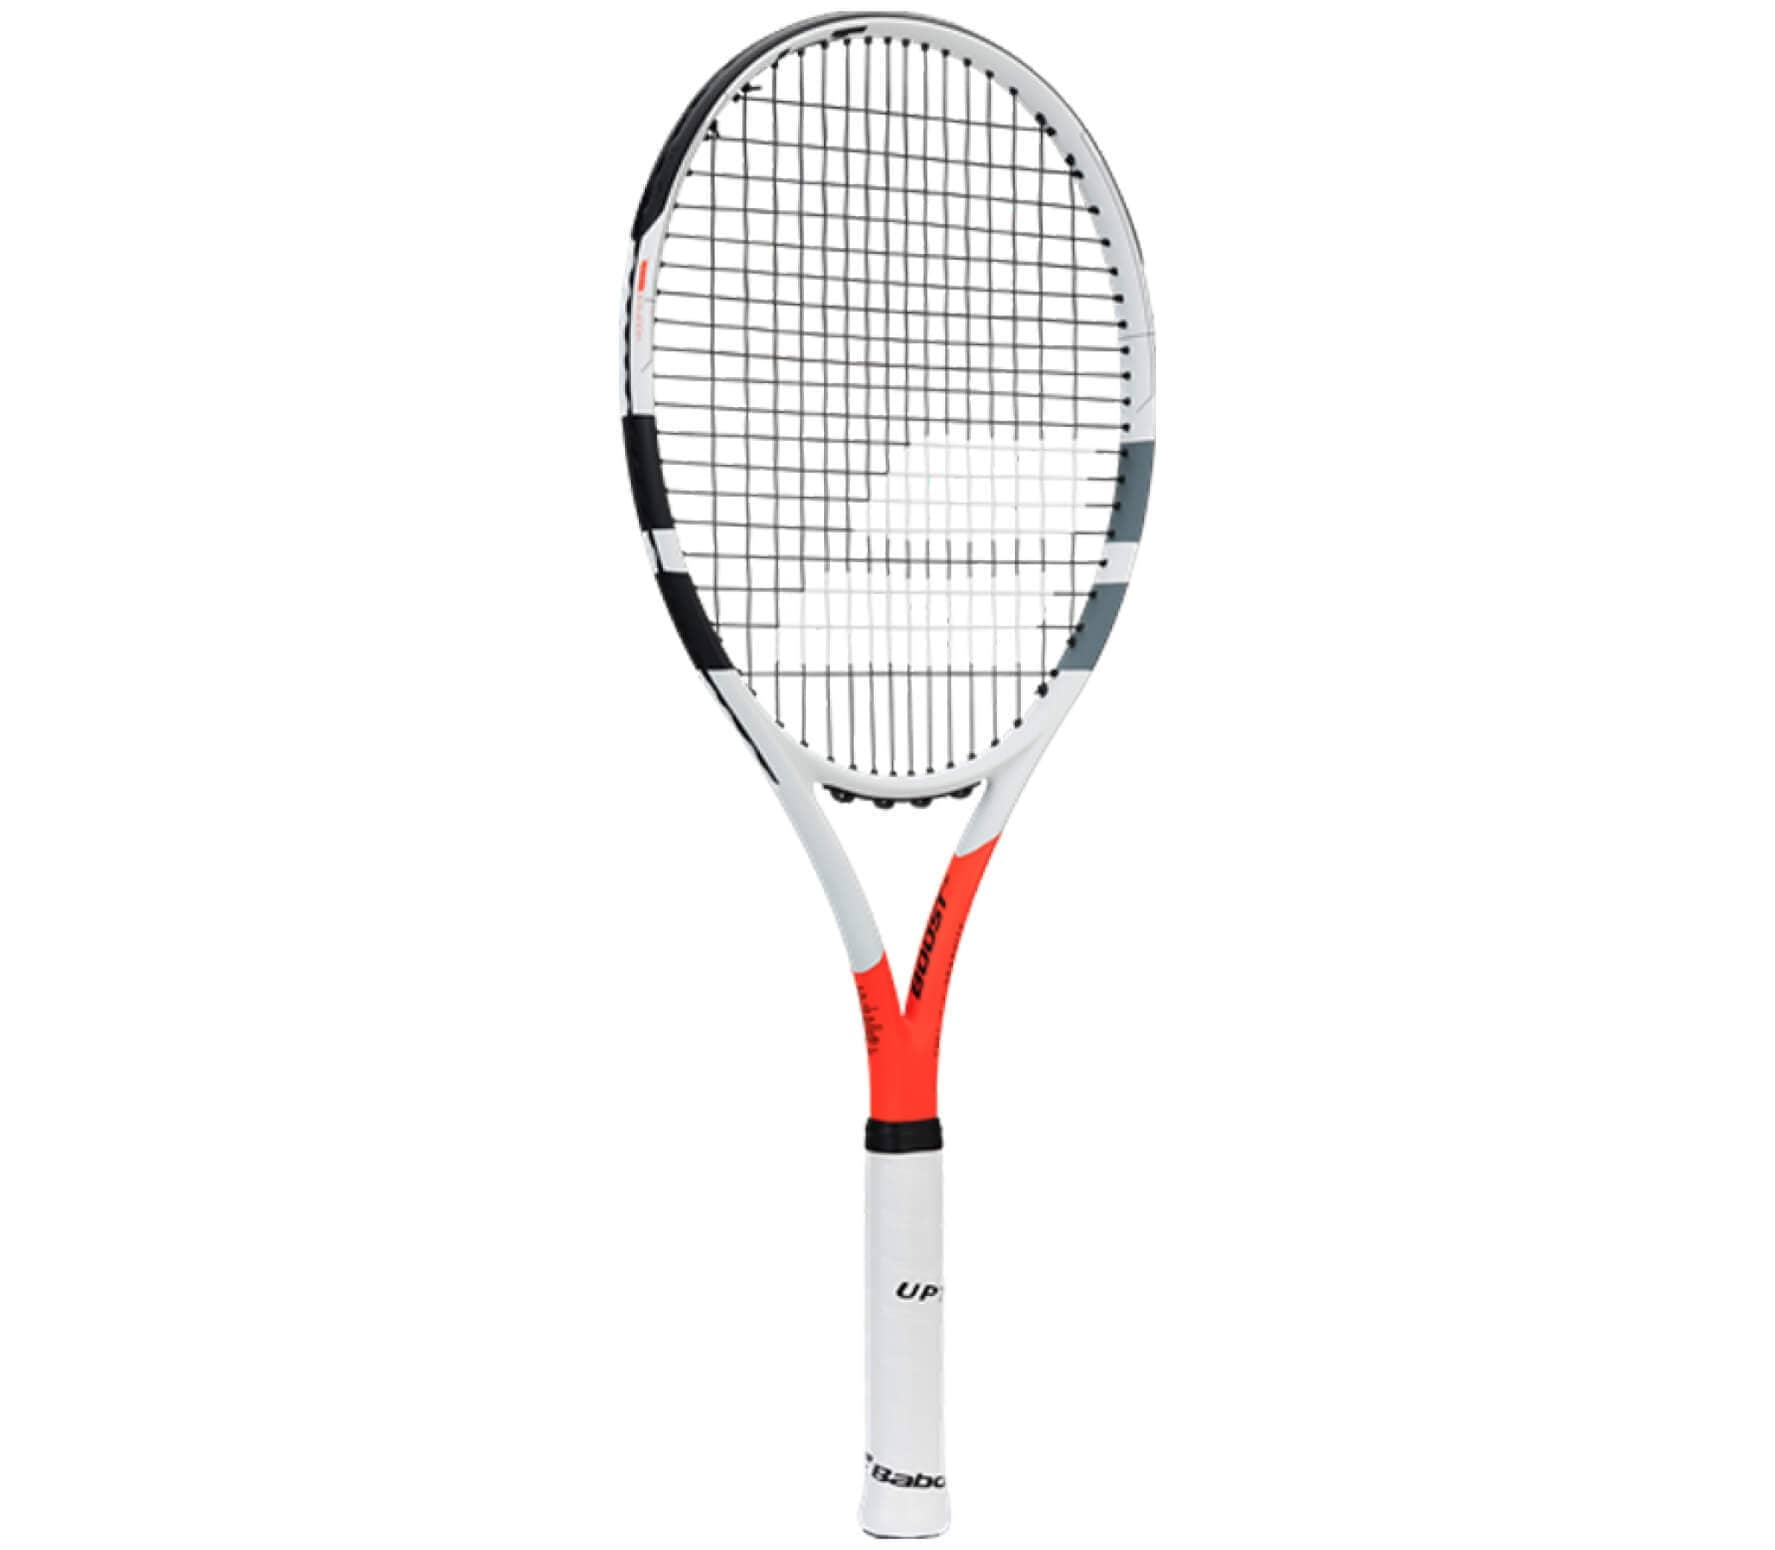 Babolat - Boost Strike strung tennis racket (white/red)